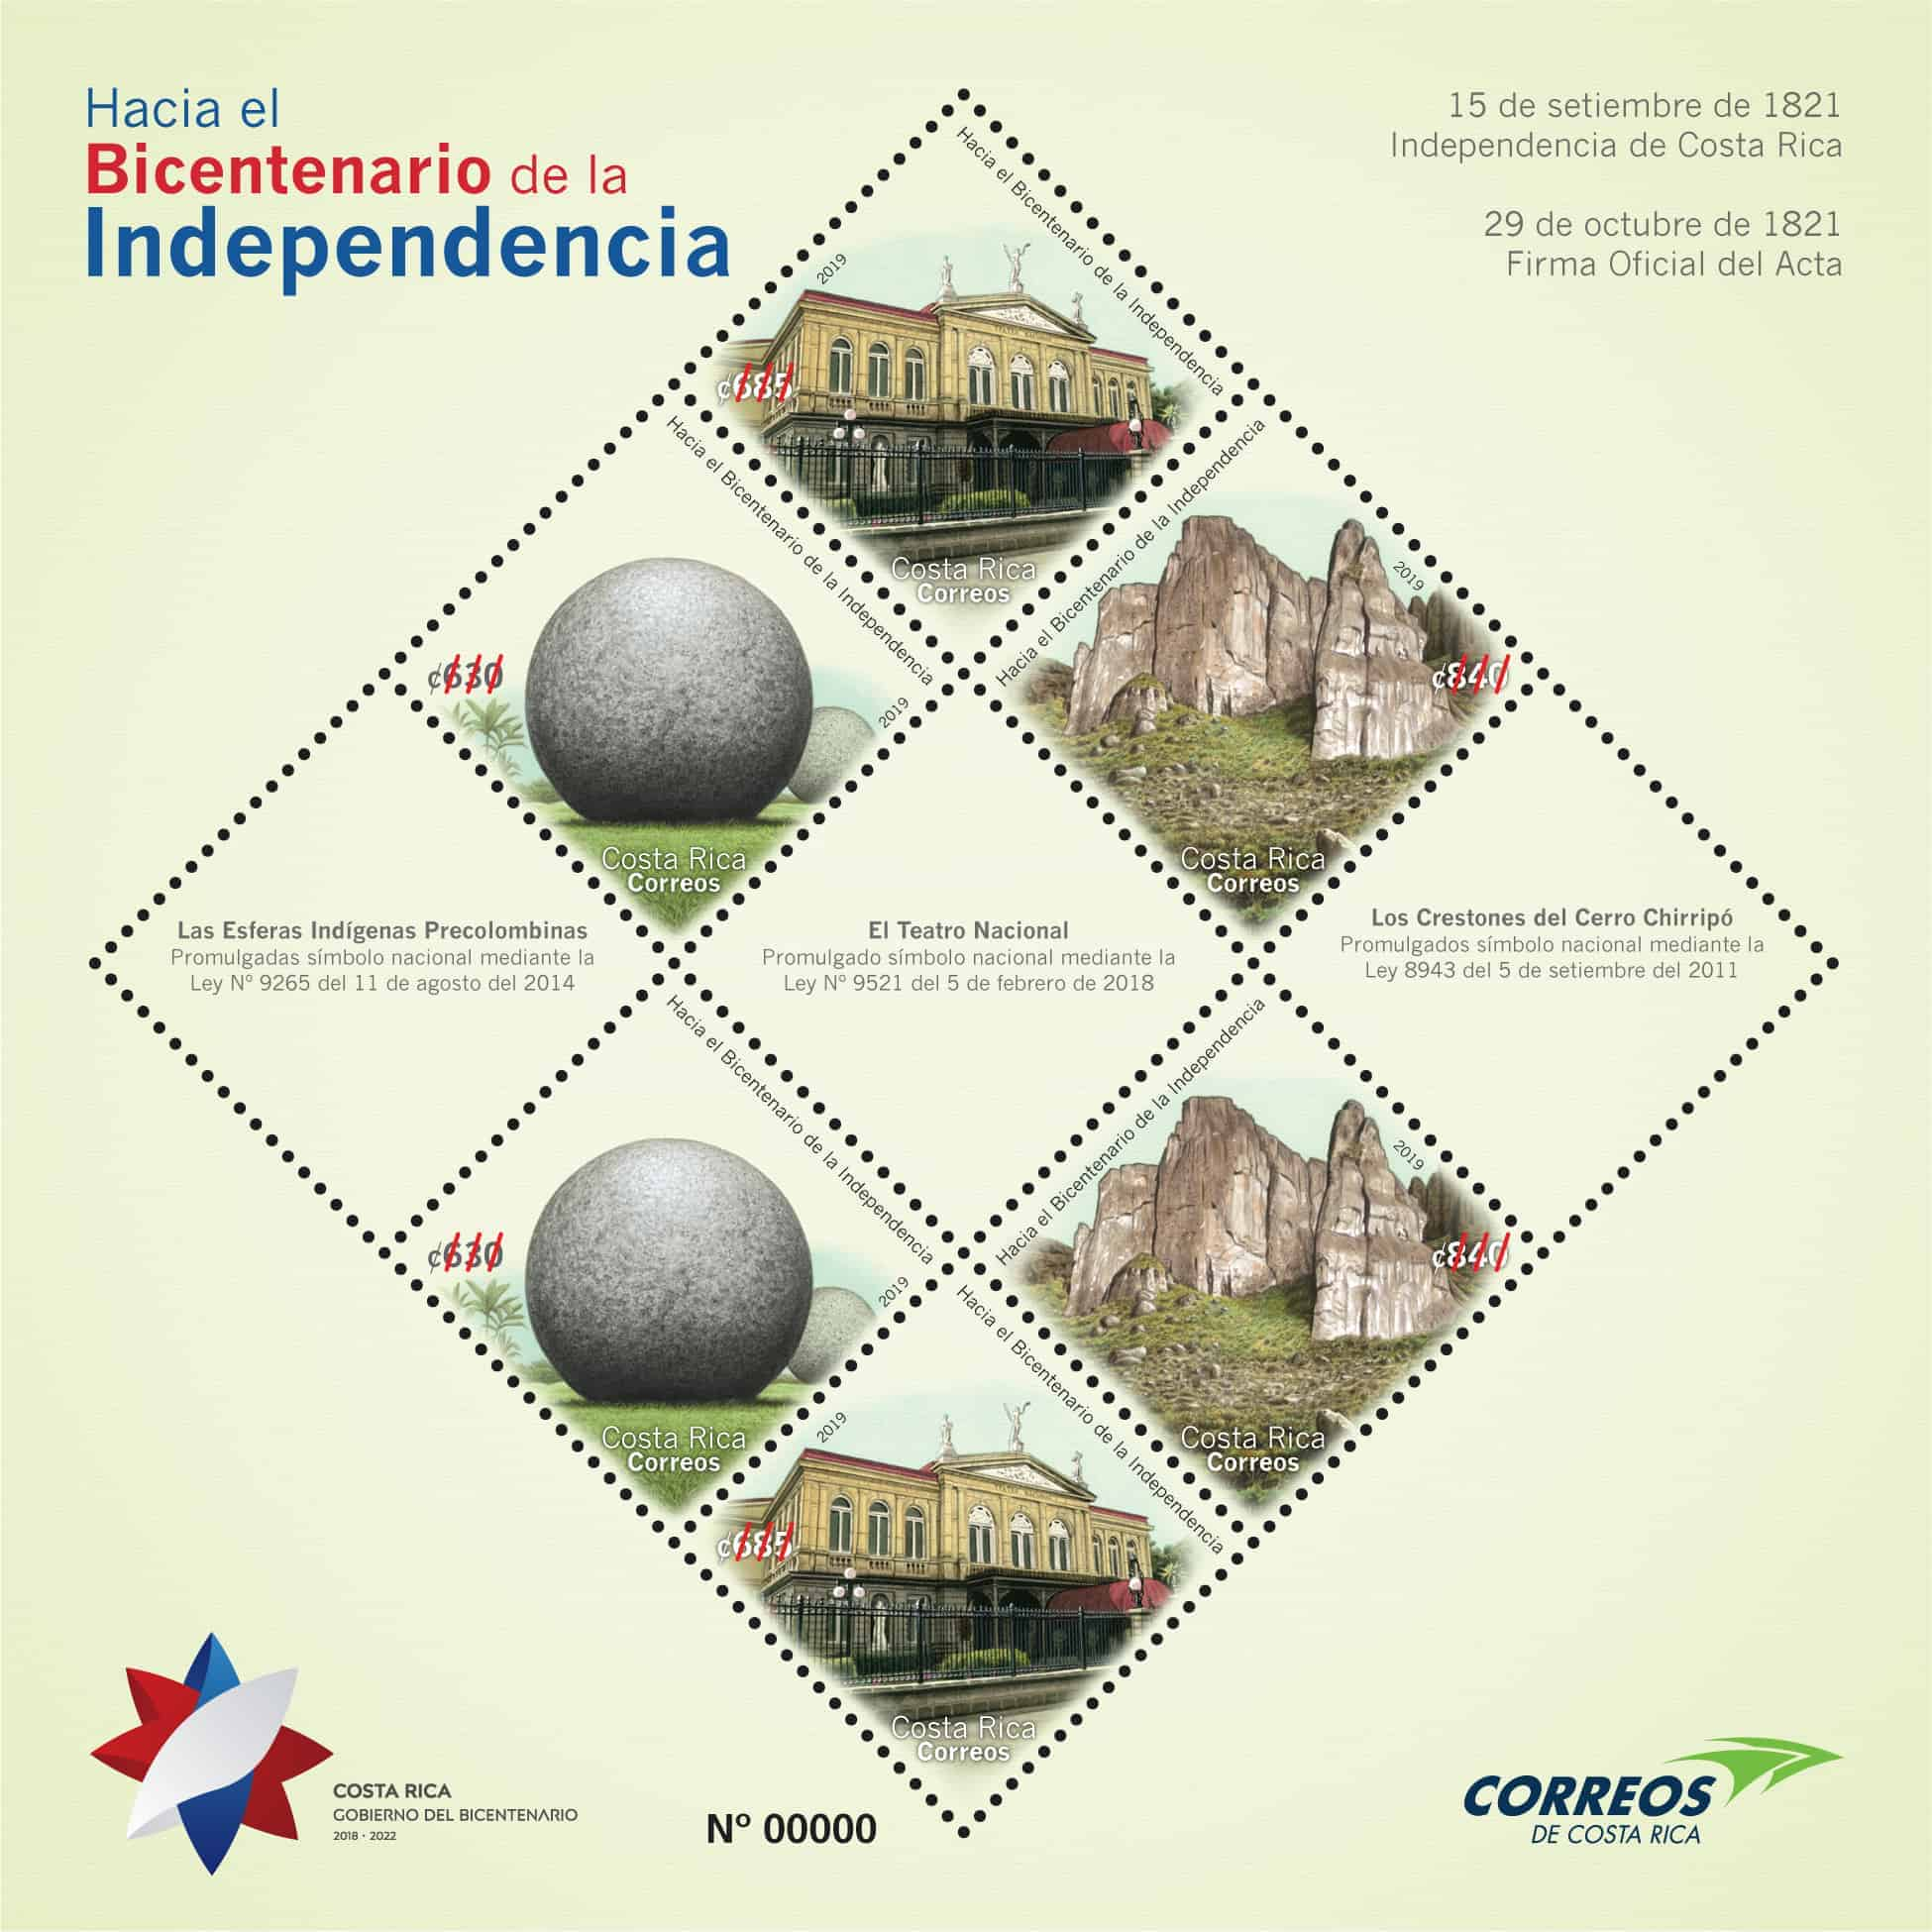 Postage stamps commemorating Costa Rica's bicentennial.